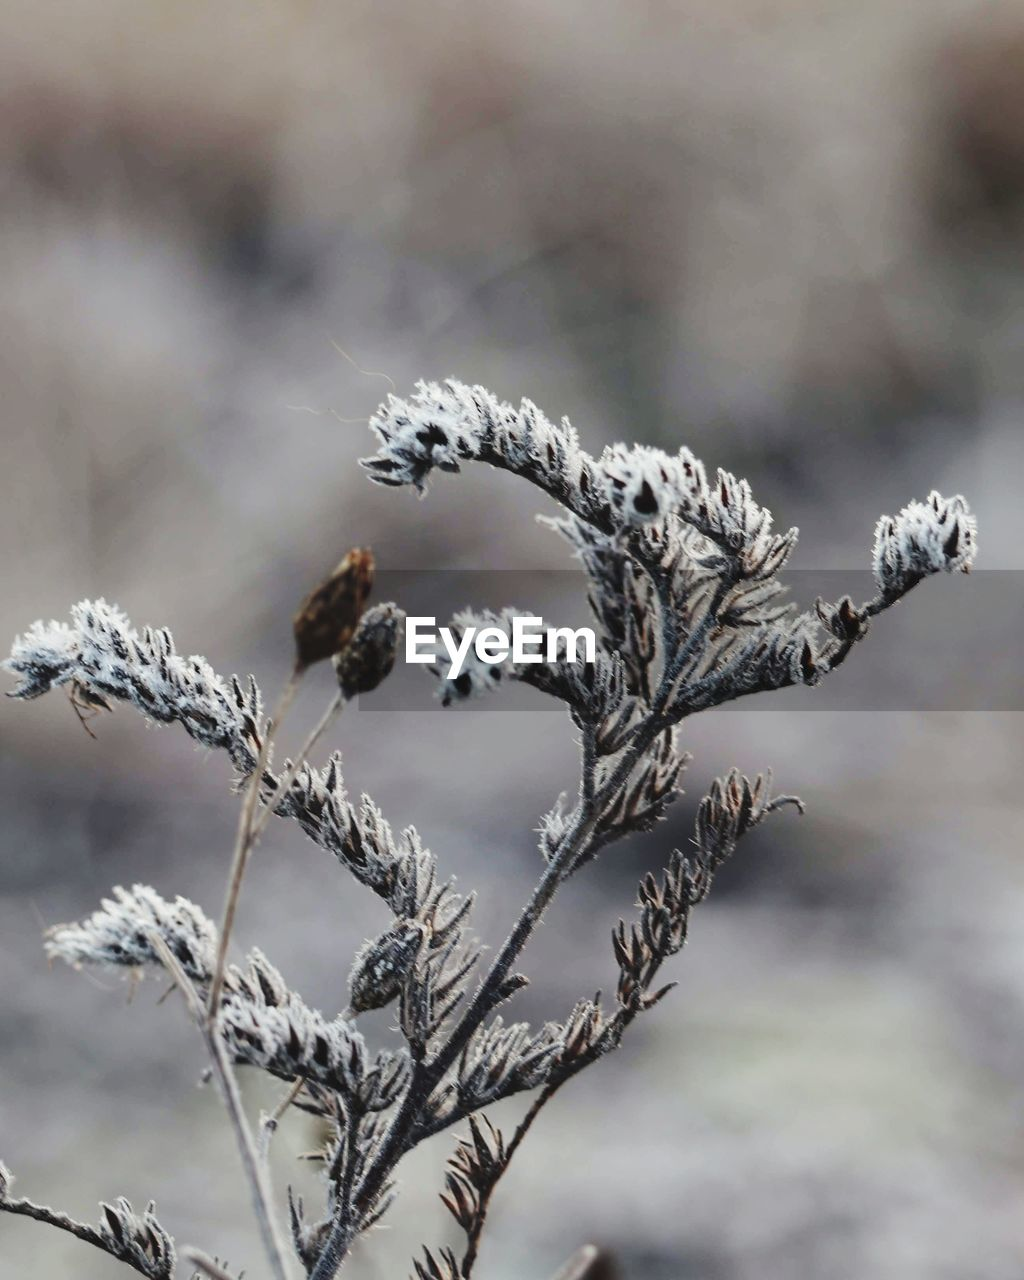 plant, focus on foreground, growth, nature, cold temperature, close-up, day, no people, winter, beauty in nature, tranquility, flower, frozen, snow, twig, plant stem, outdoors, vulnerability, fragility, dead plant, blizzard, wilted plant